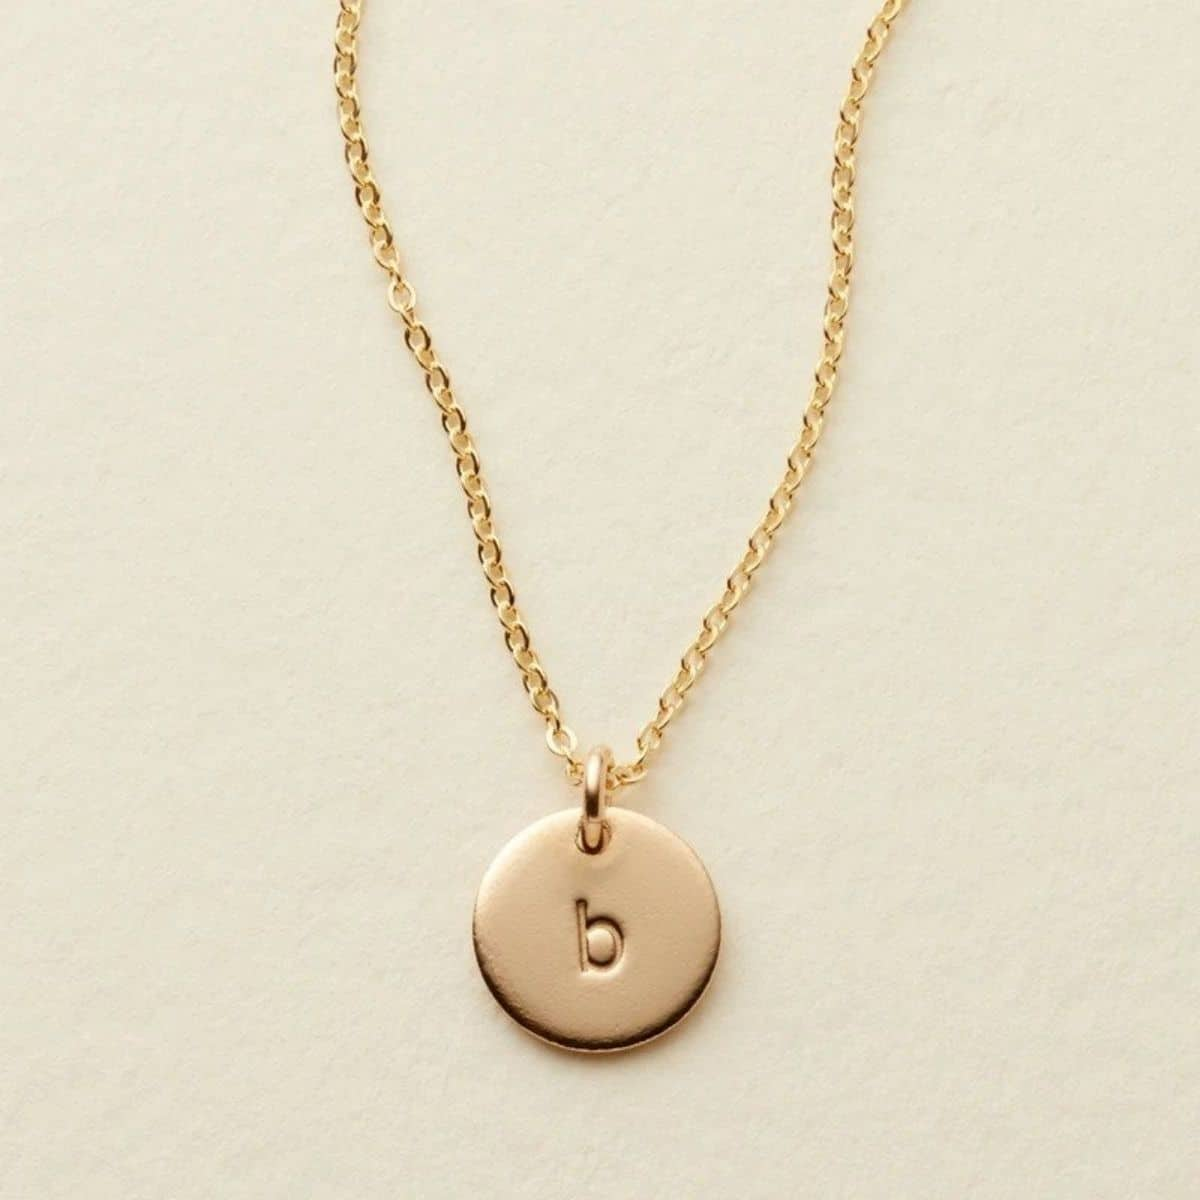 gold personalized initial necklace with the letter b